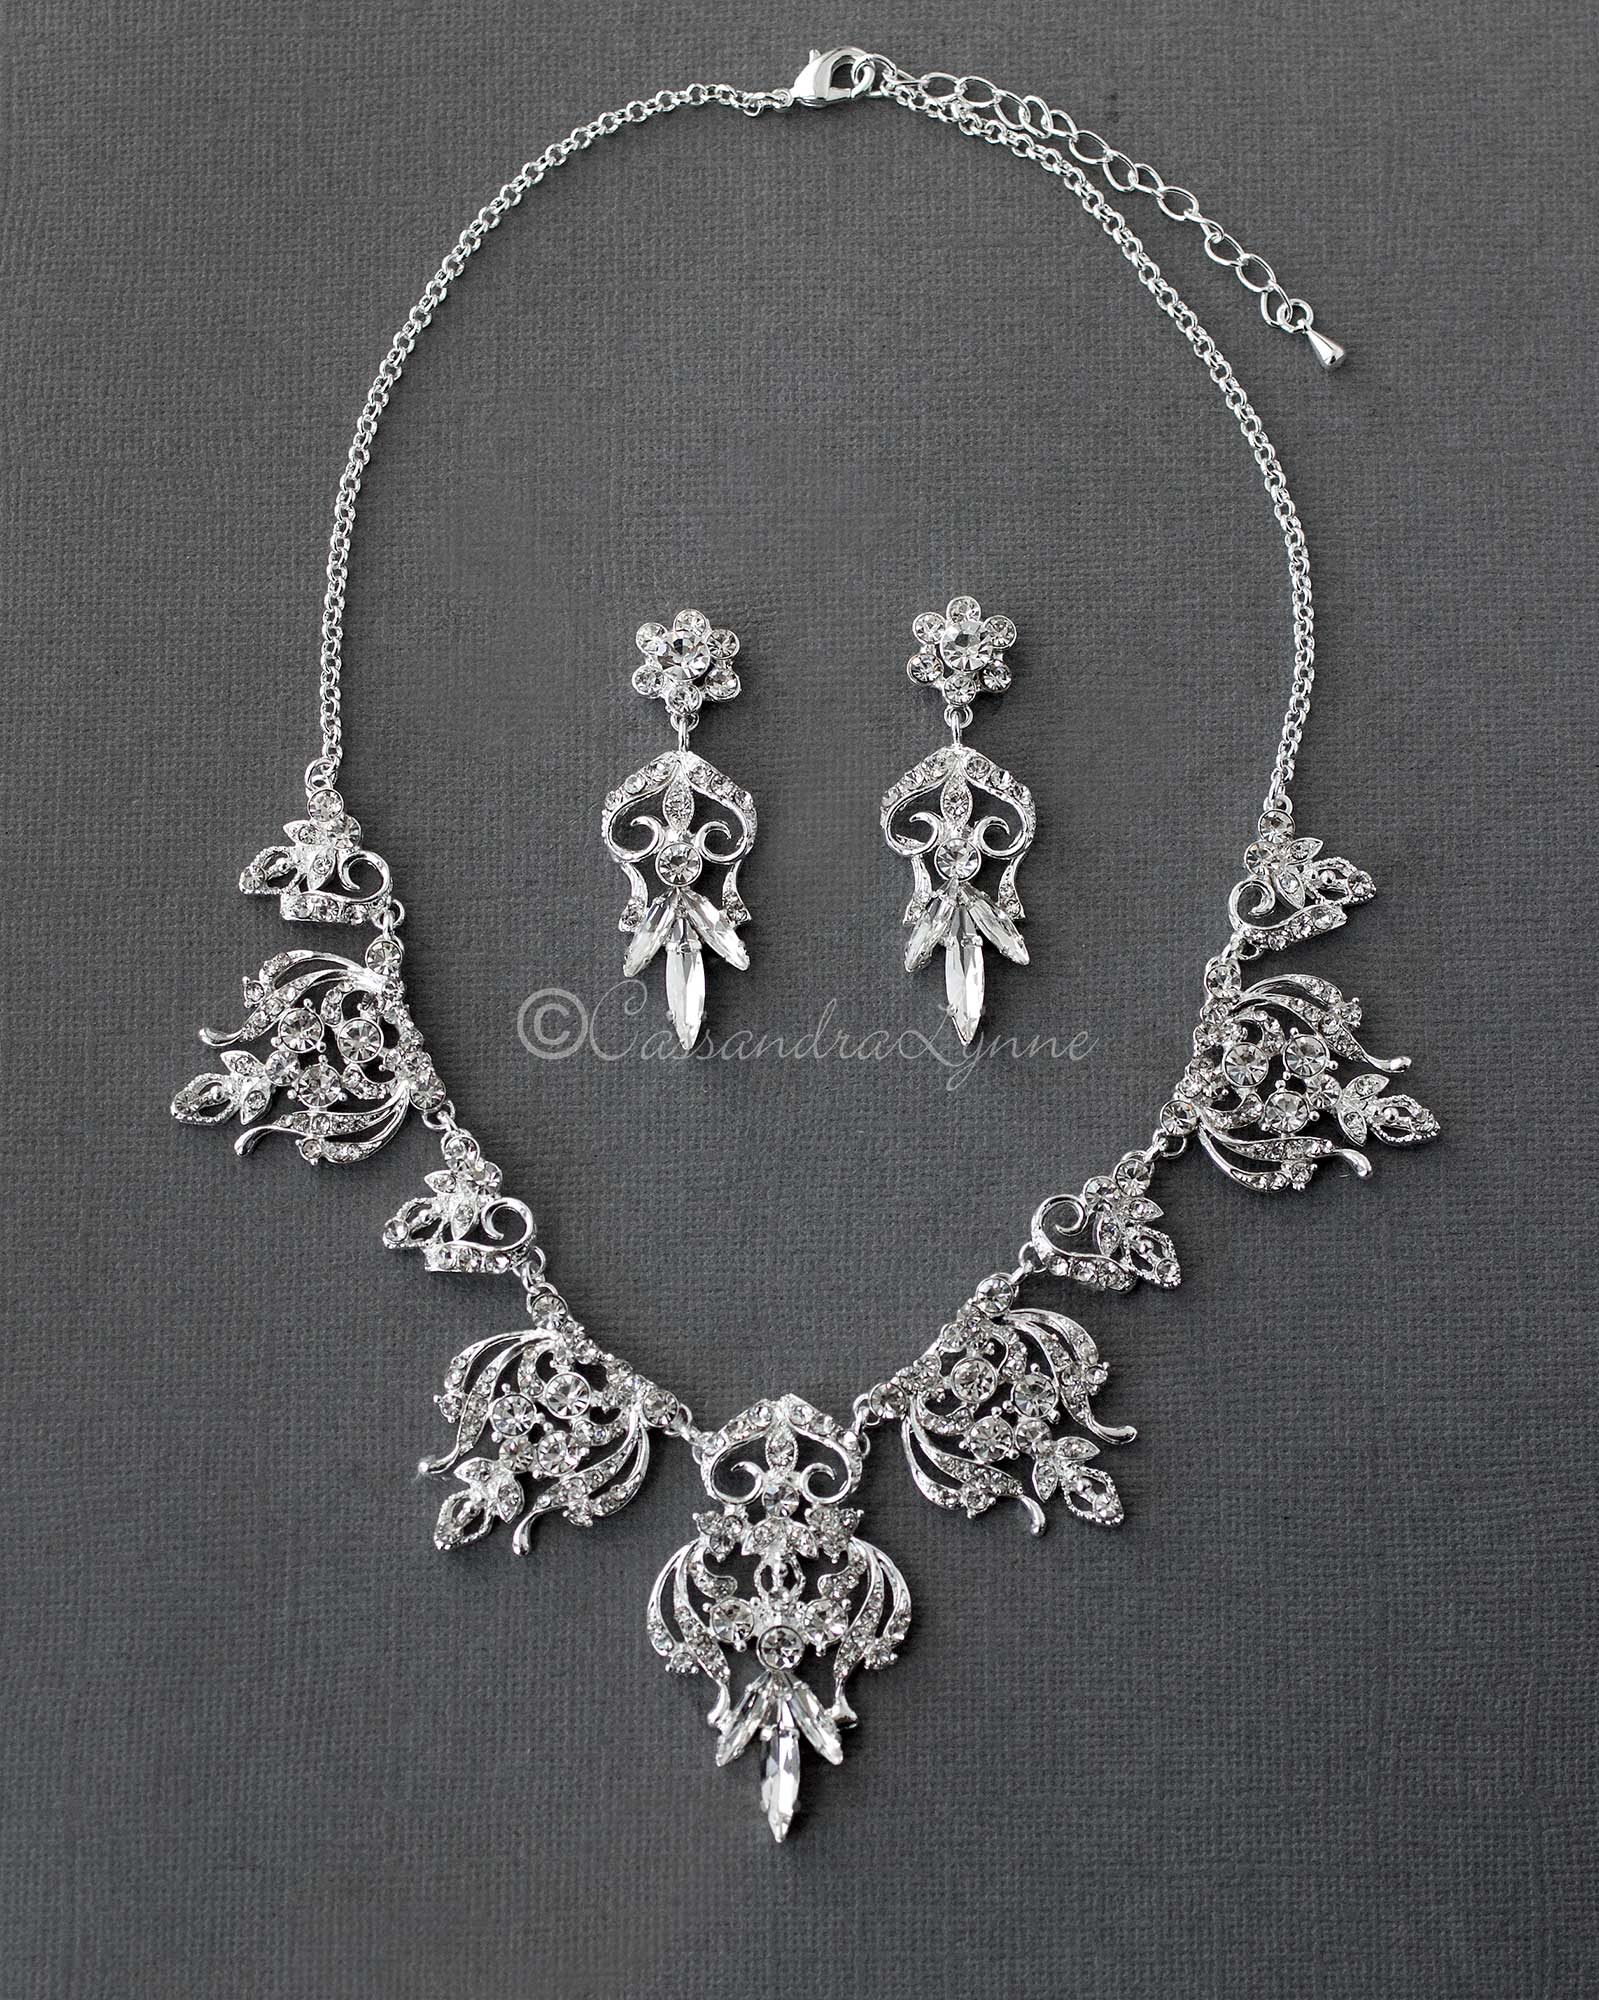 Filigree Bridal Necklace Set